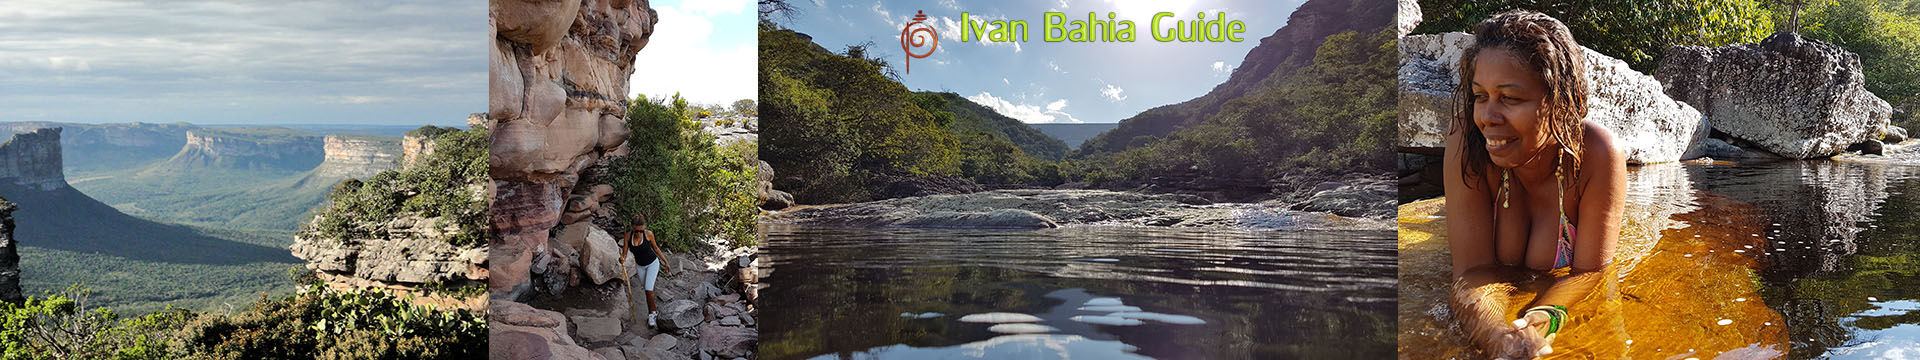 Organize your travel in Bahia / Brazil with Ivan Bahia tour guide / travel agency